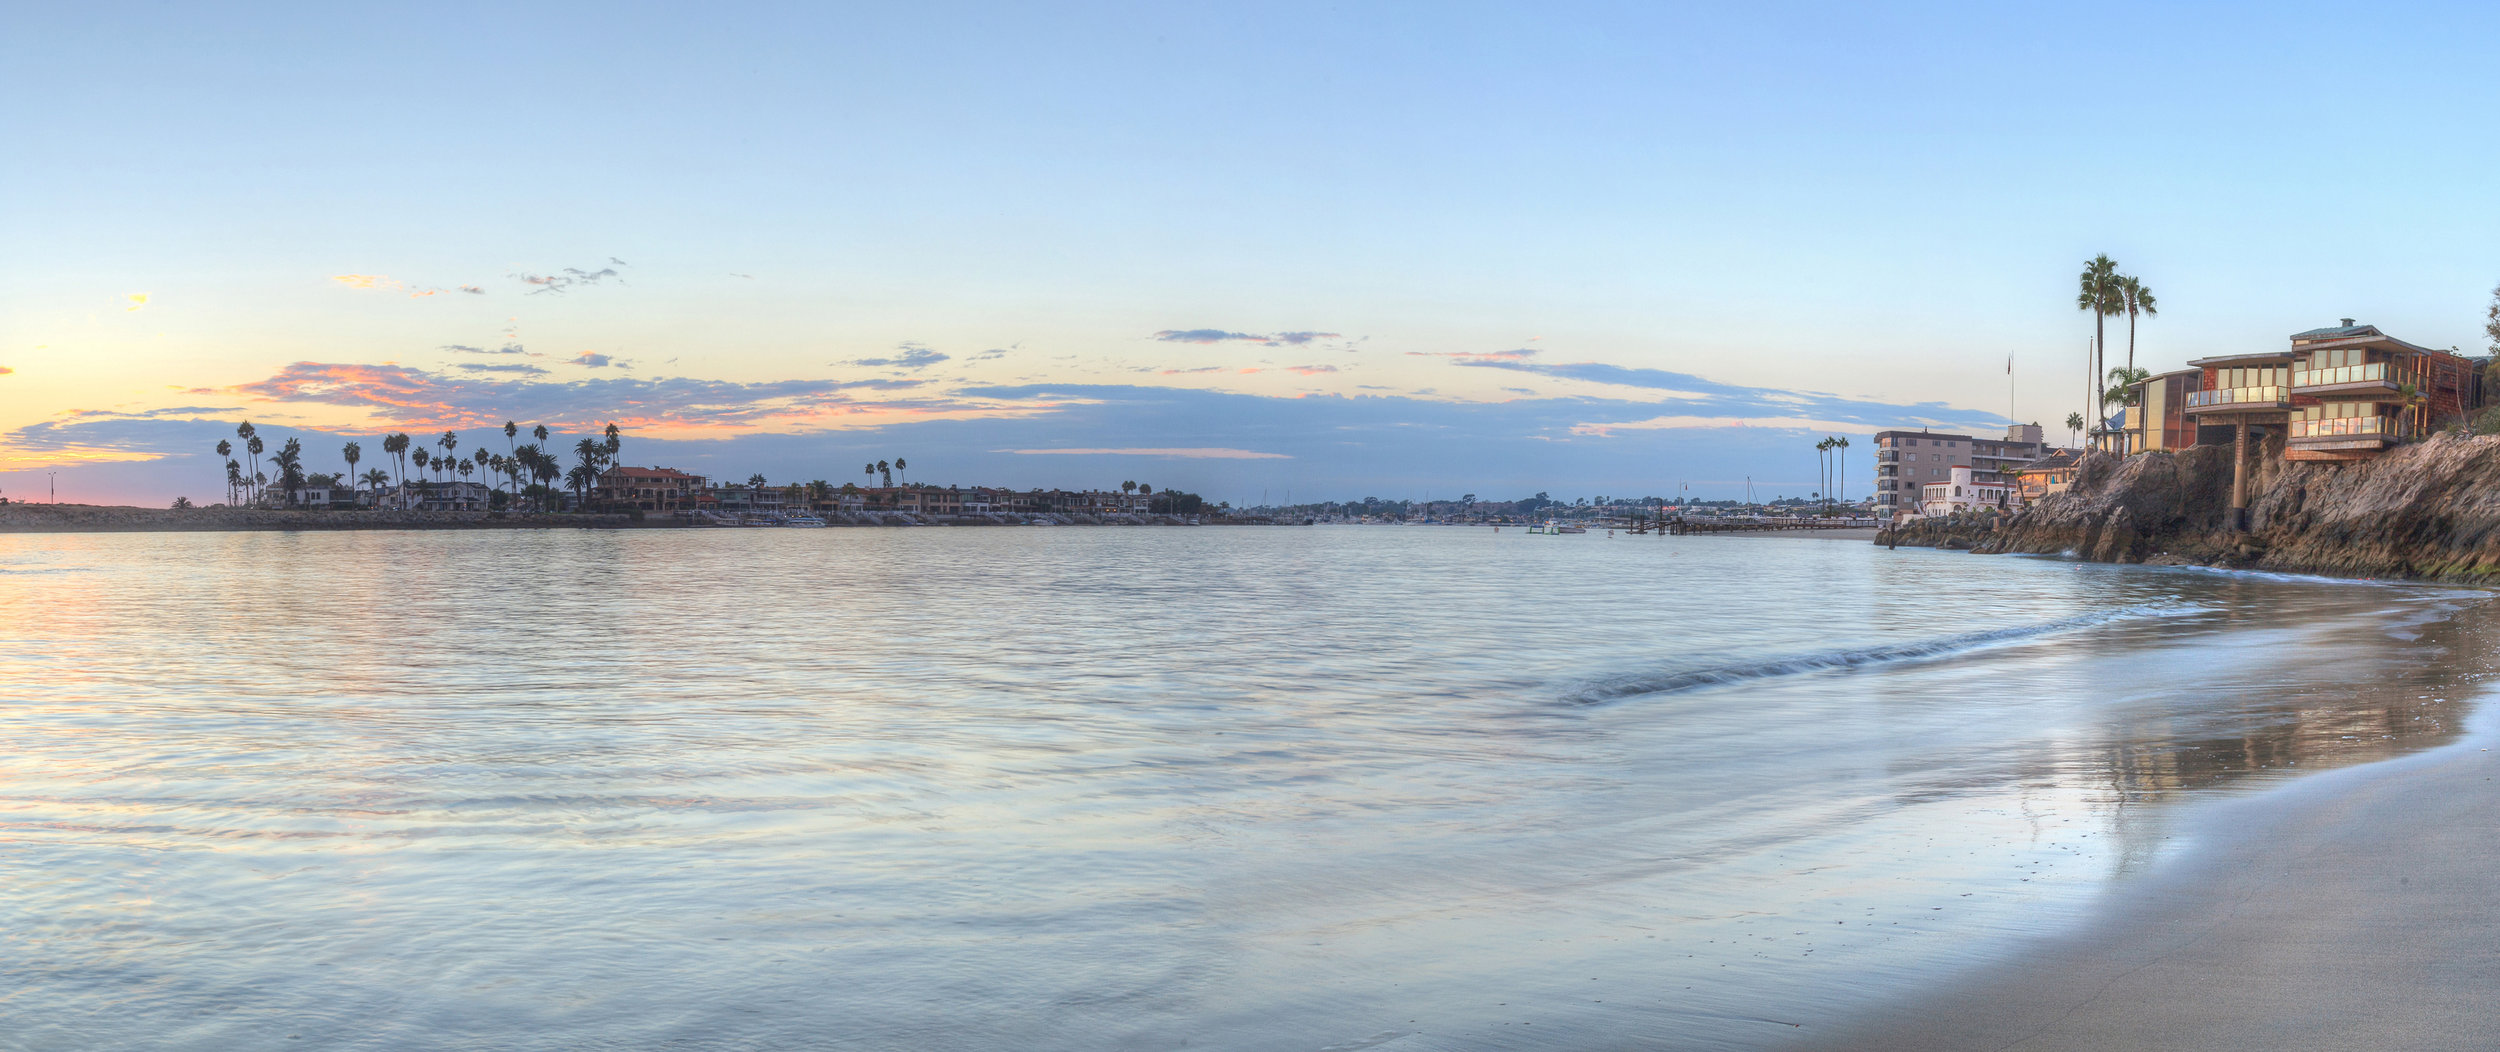 Corona del Mar beach looking towards Newport Beach and Balboa Island. Picture yourself here on night one photographing dogs under these amazing skies as the sun sets. <insert squeal here>